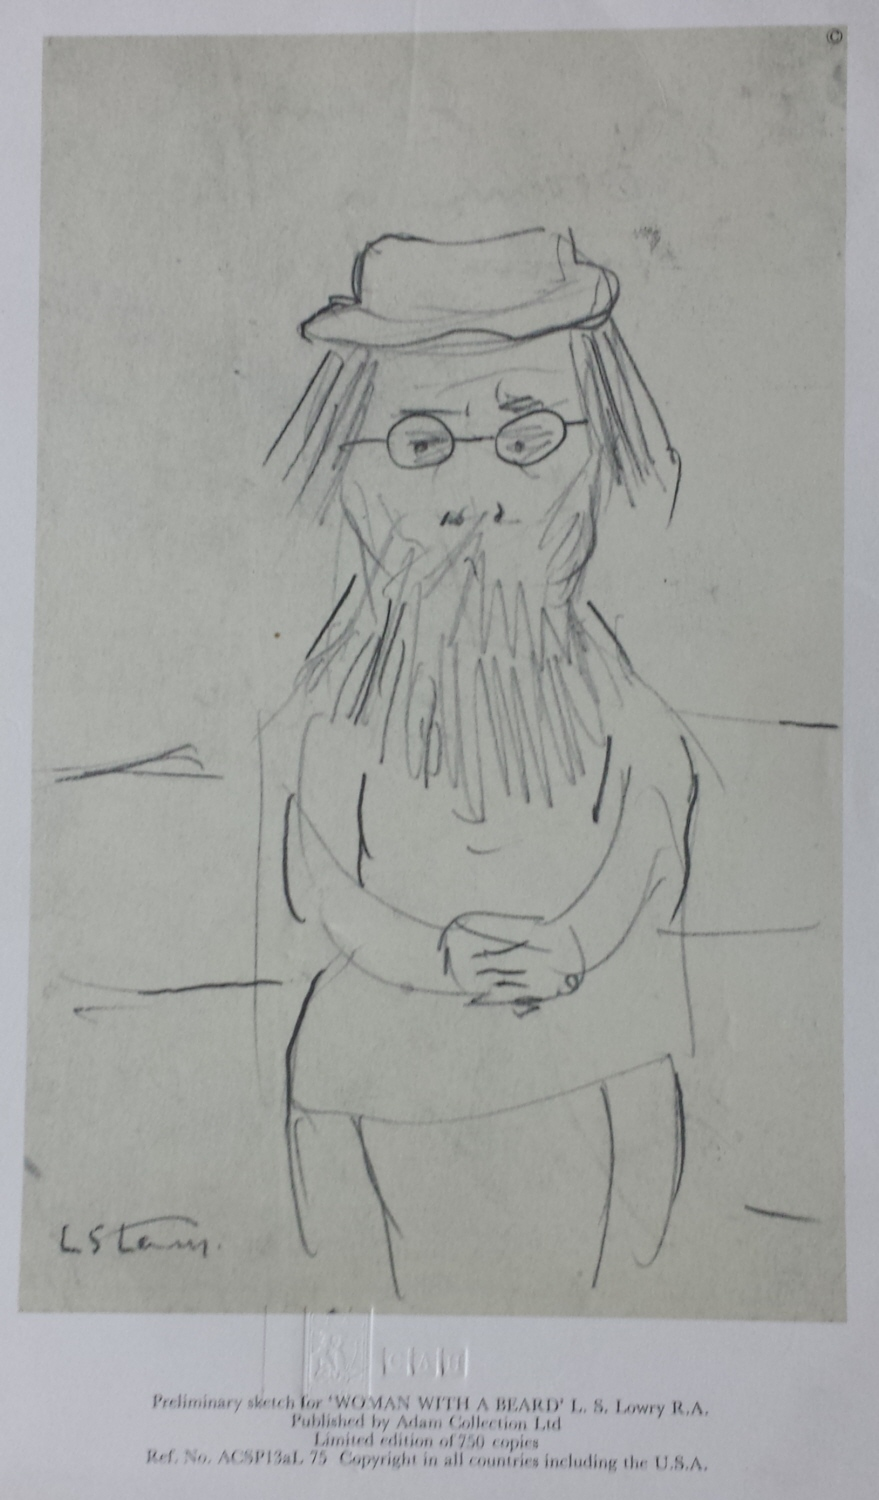 lowry woman with beard sketch signed print lslowry